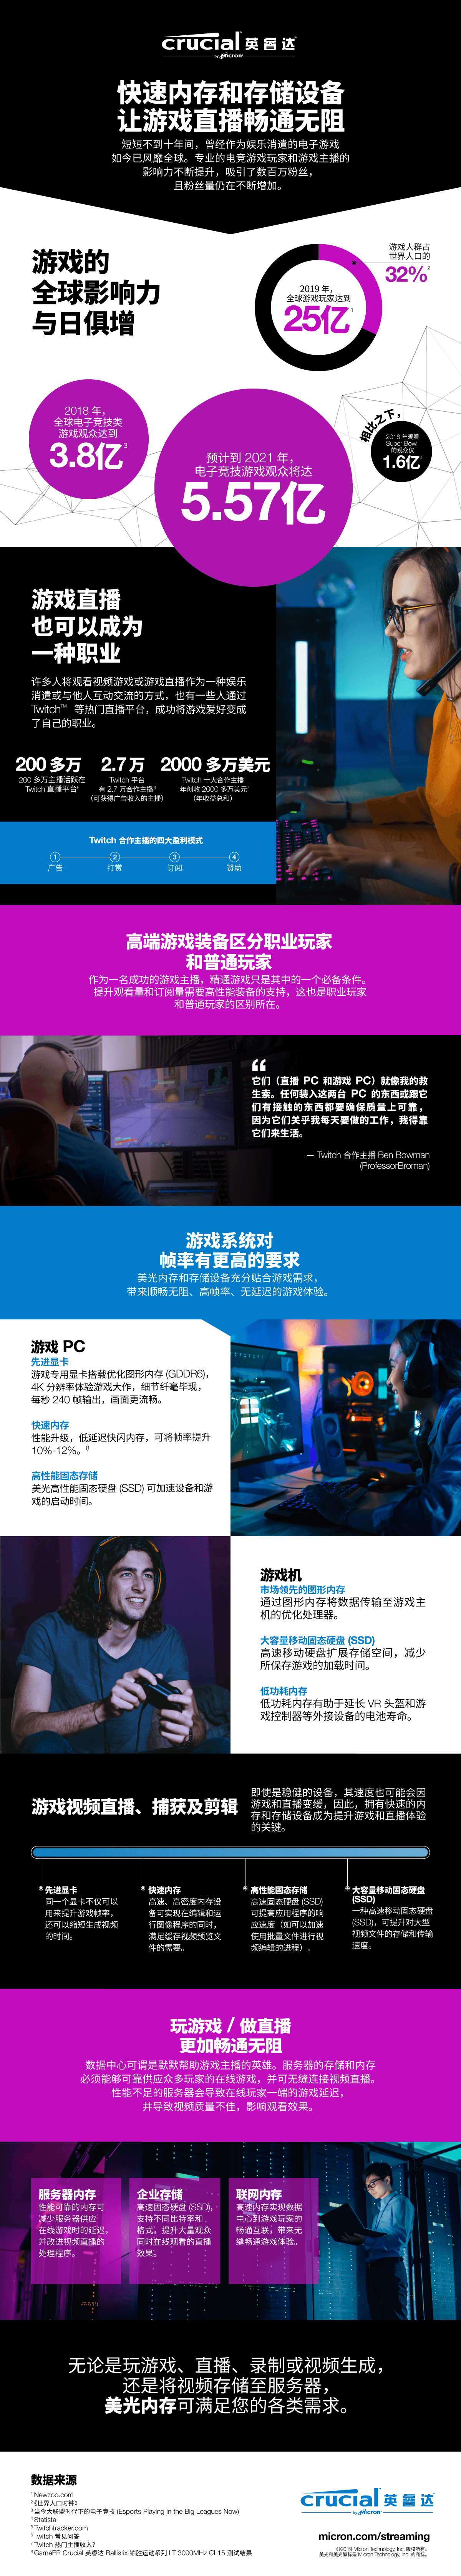 Gaming Infographic CN